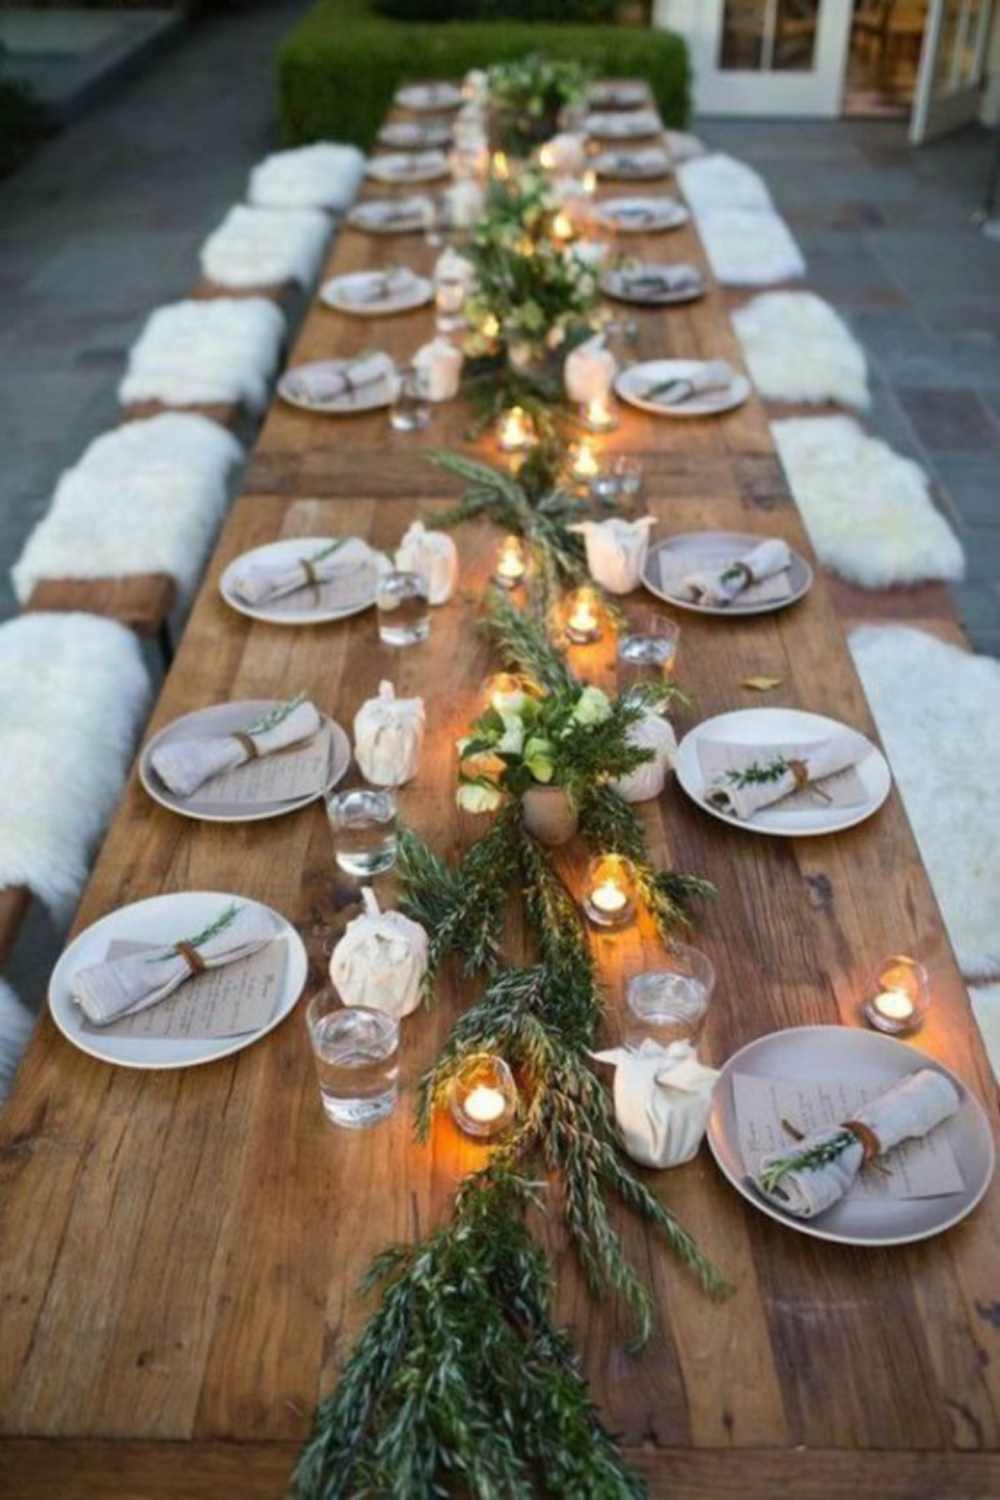 Rustic outdoor fall tablescape with long farm table, candlelight, and sheepskin over benches - Williams Sonoma. #falltablescape #farmhousefall #outdoorentertaining